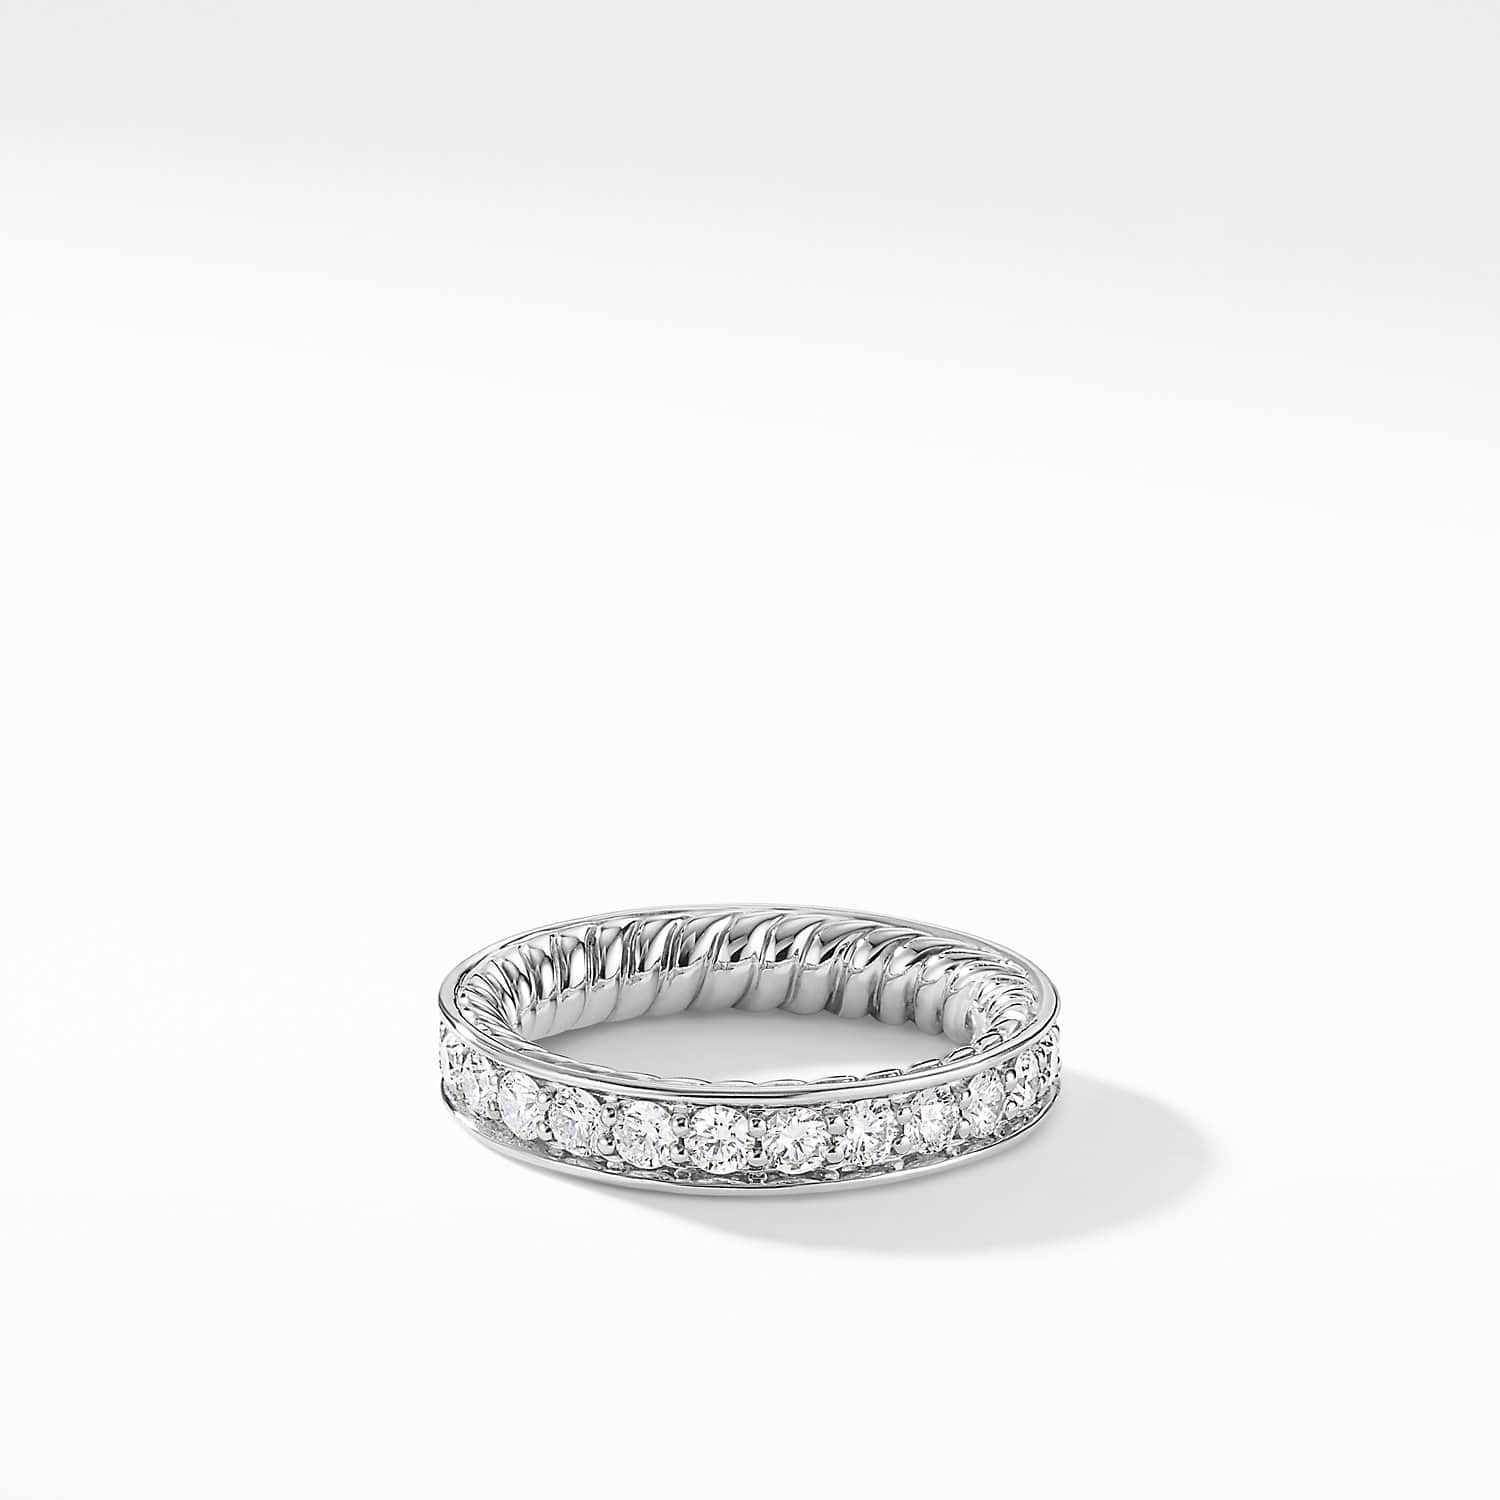 It is just a photo of DY Eden Eternity Wedding Band with Diamonds in Platinum, 338.38mm